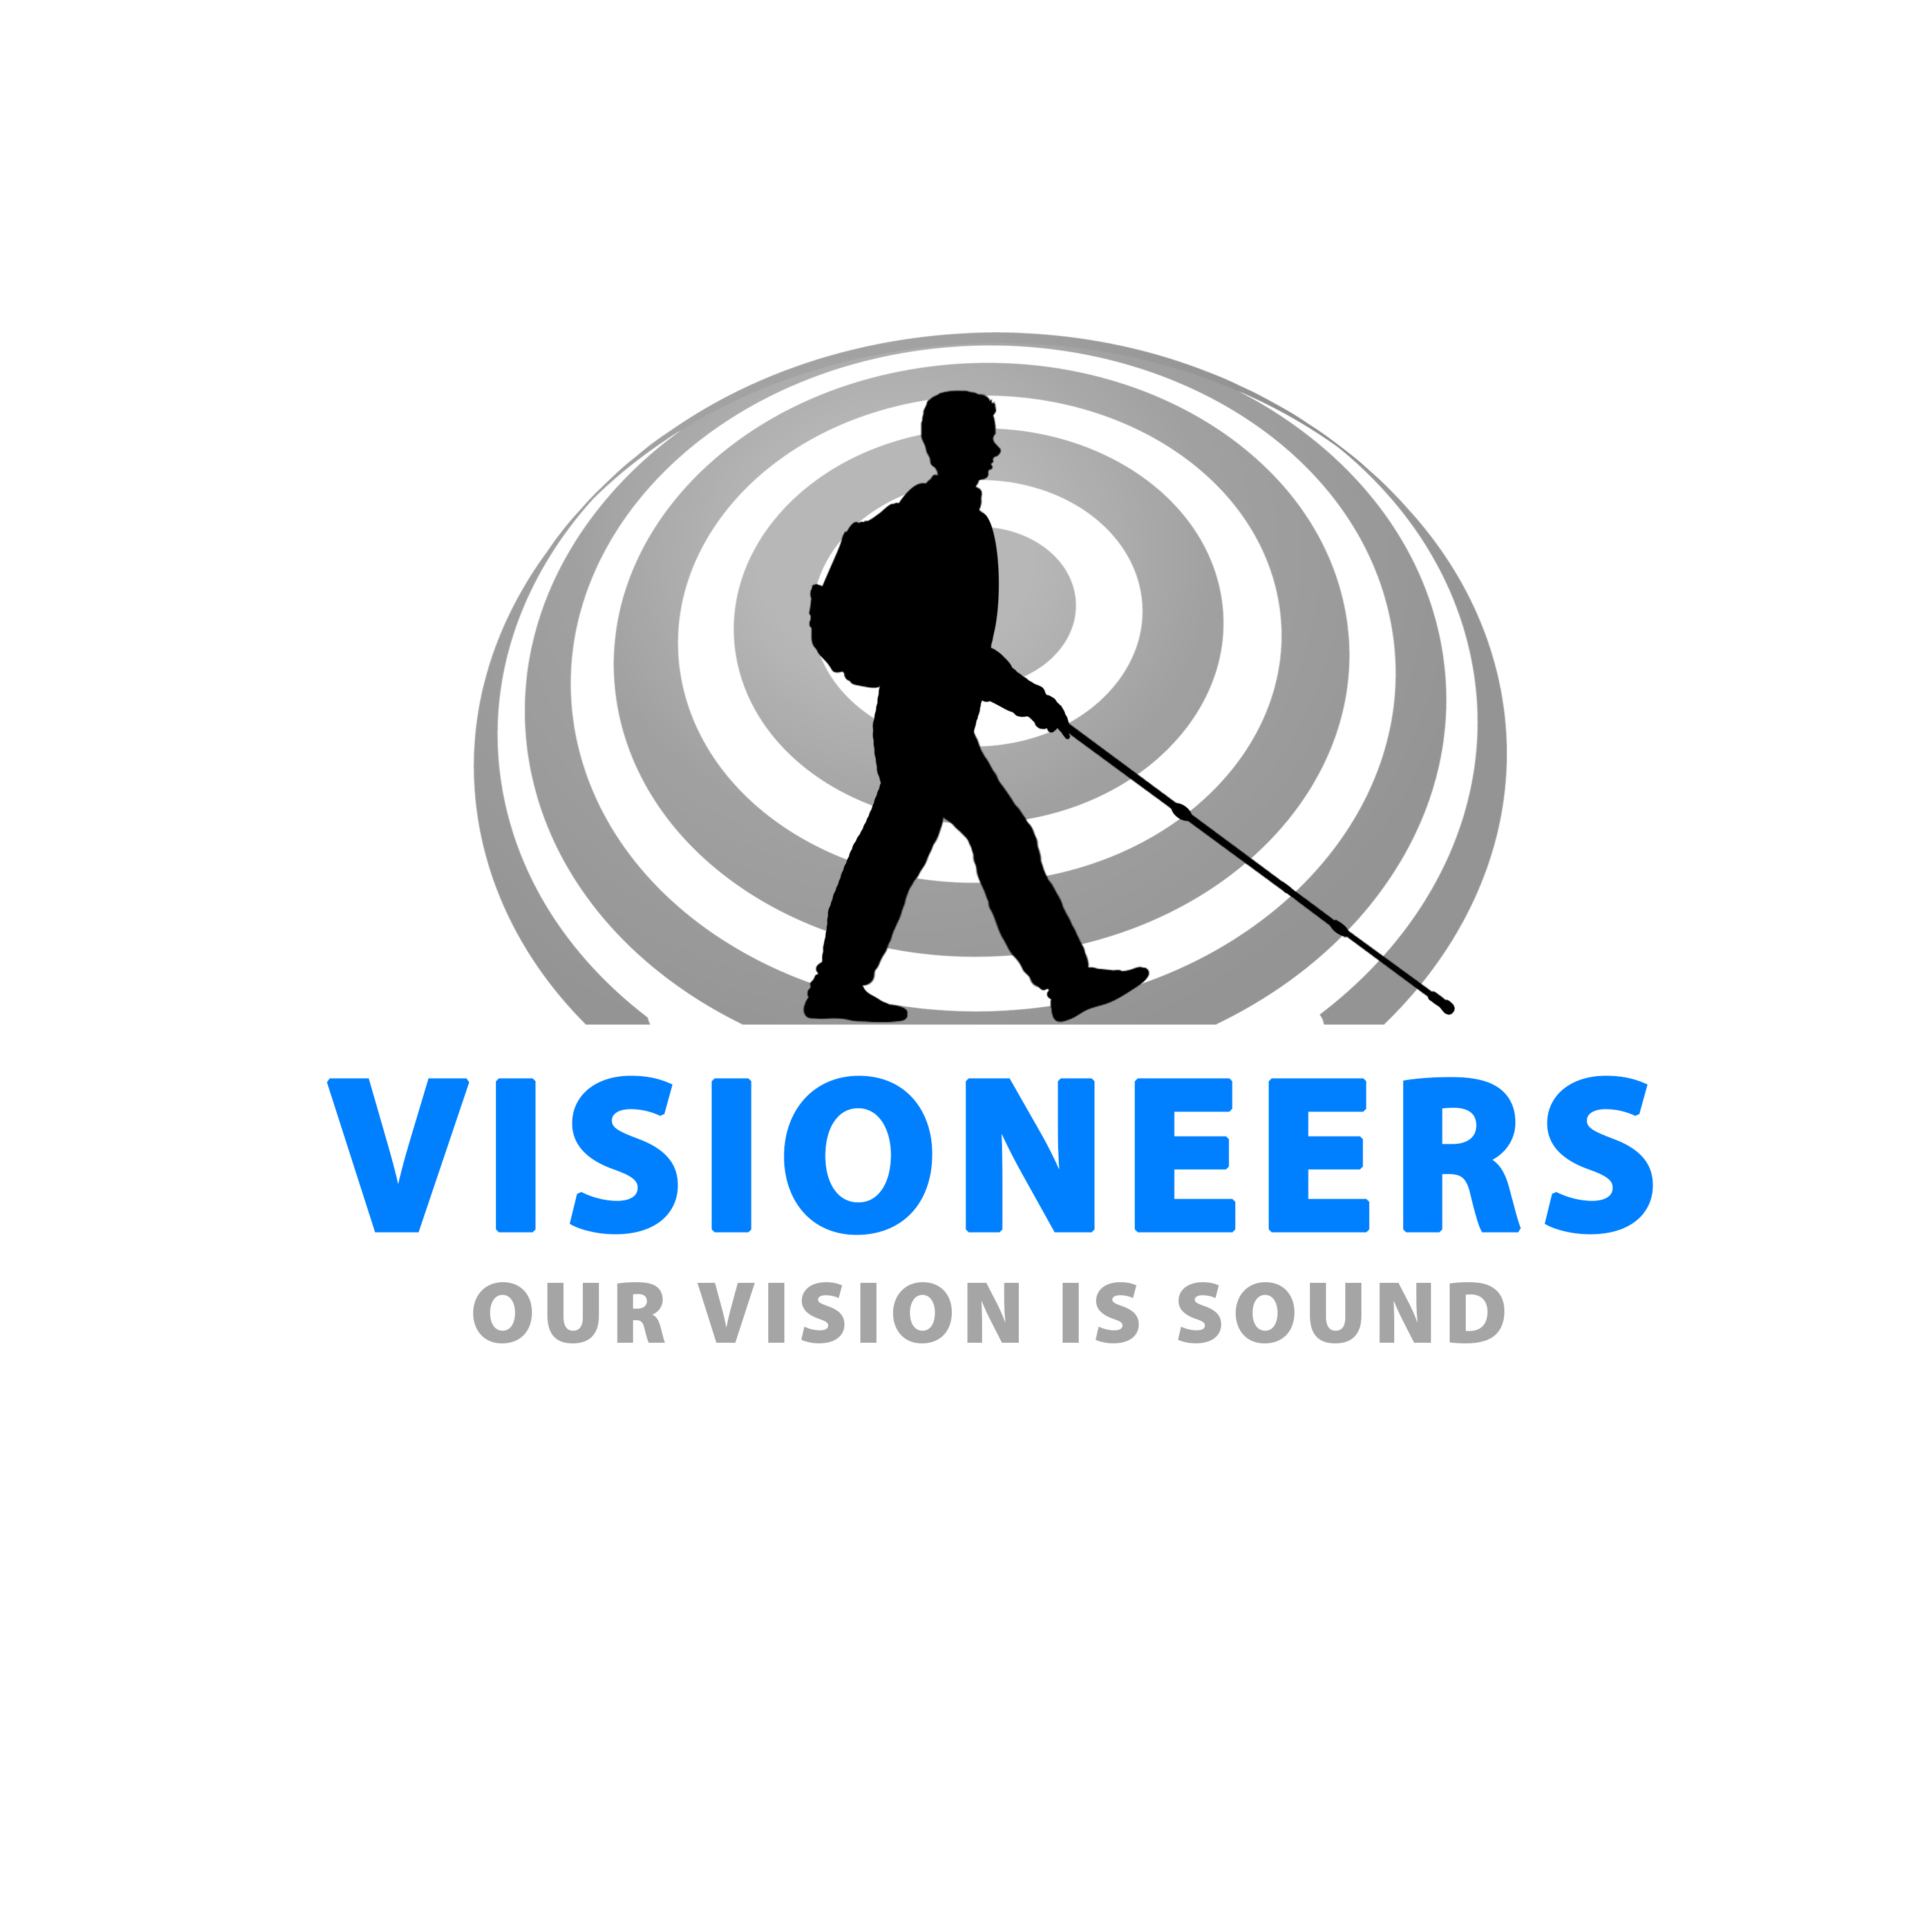 Visioneers 20. Same as previous panel with foreground blue sonar wave removed.